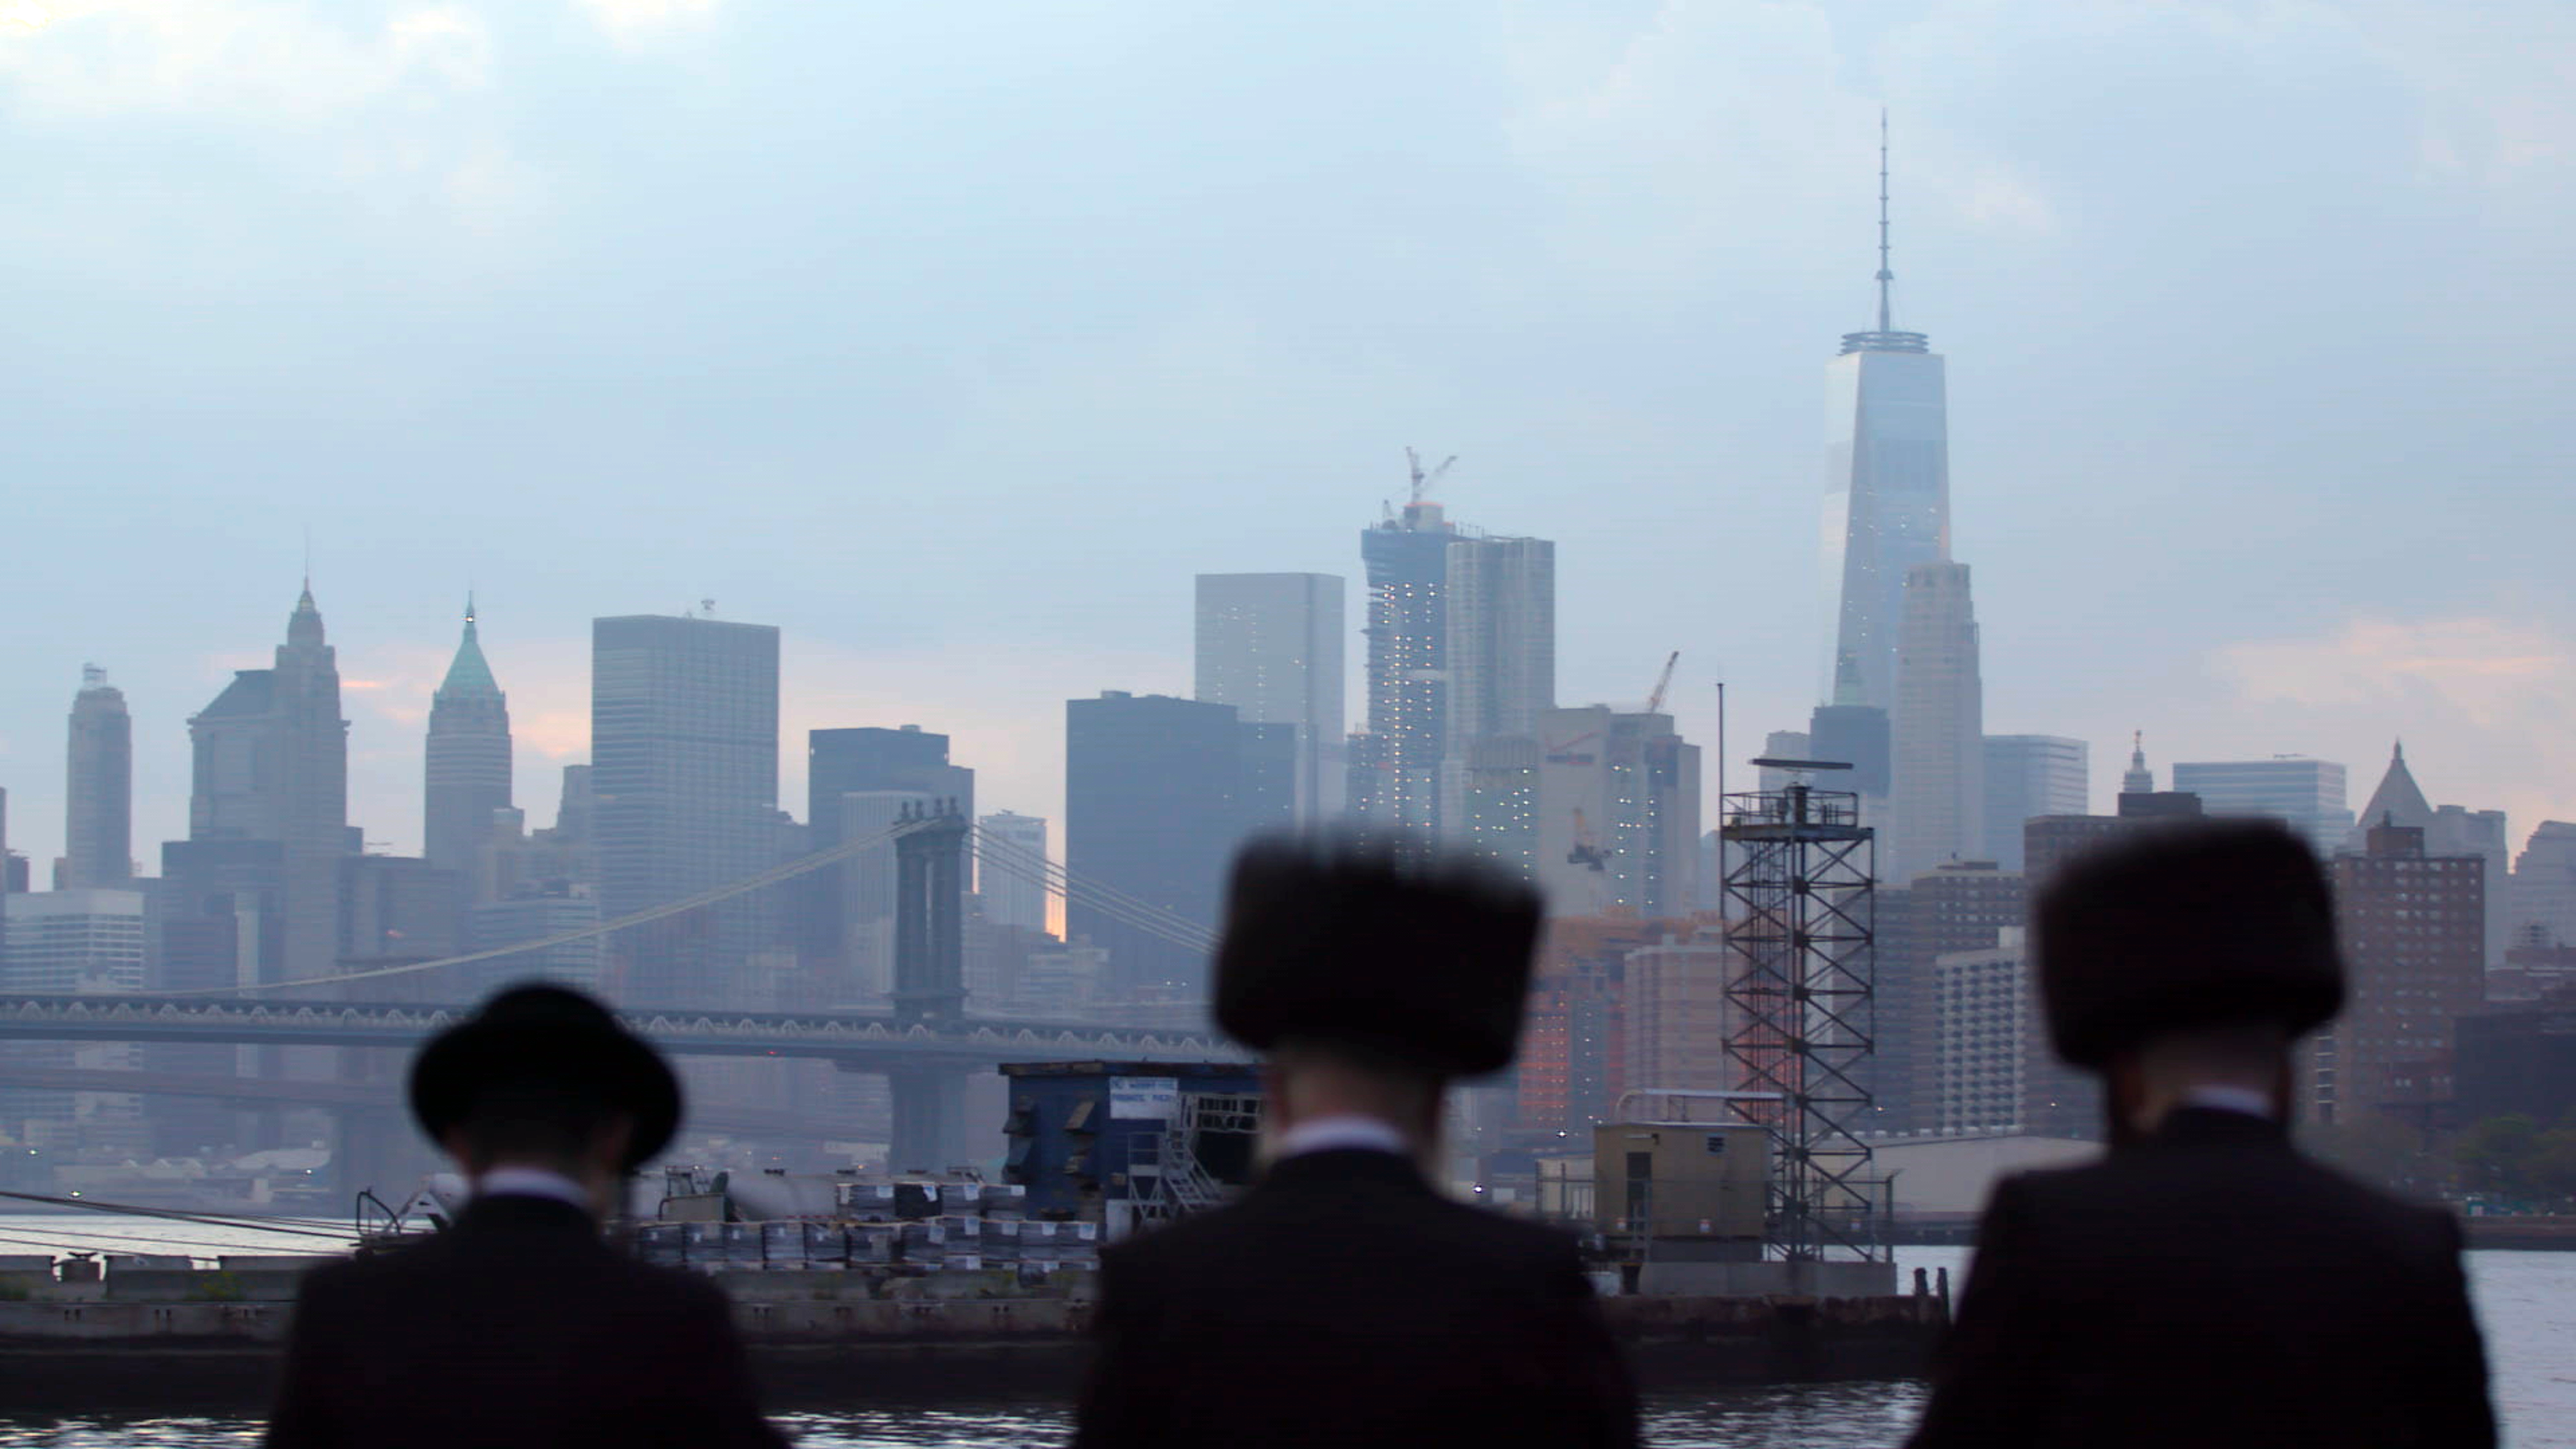 vice.com - Leaving the Hasidic Community Is Only Half the Battle